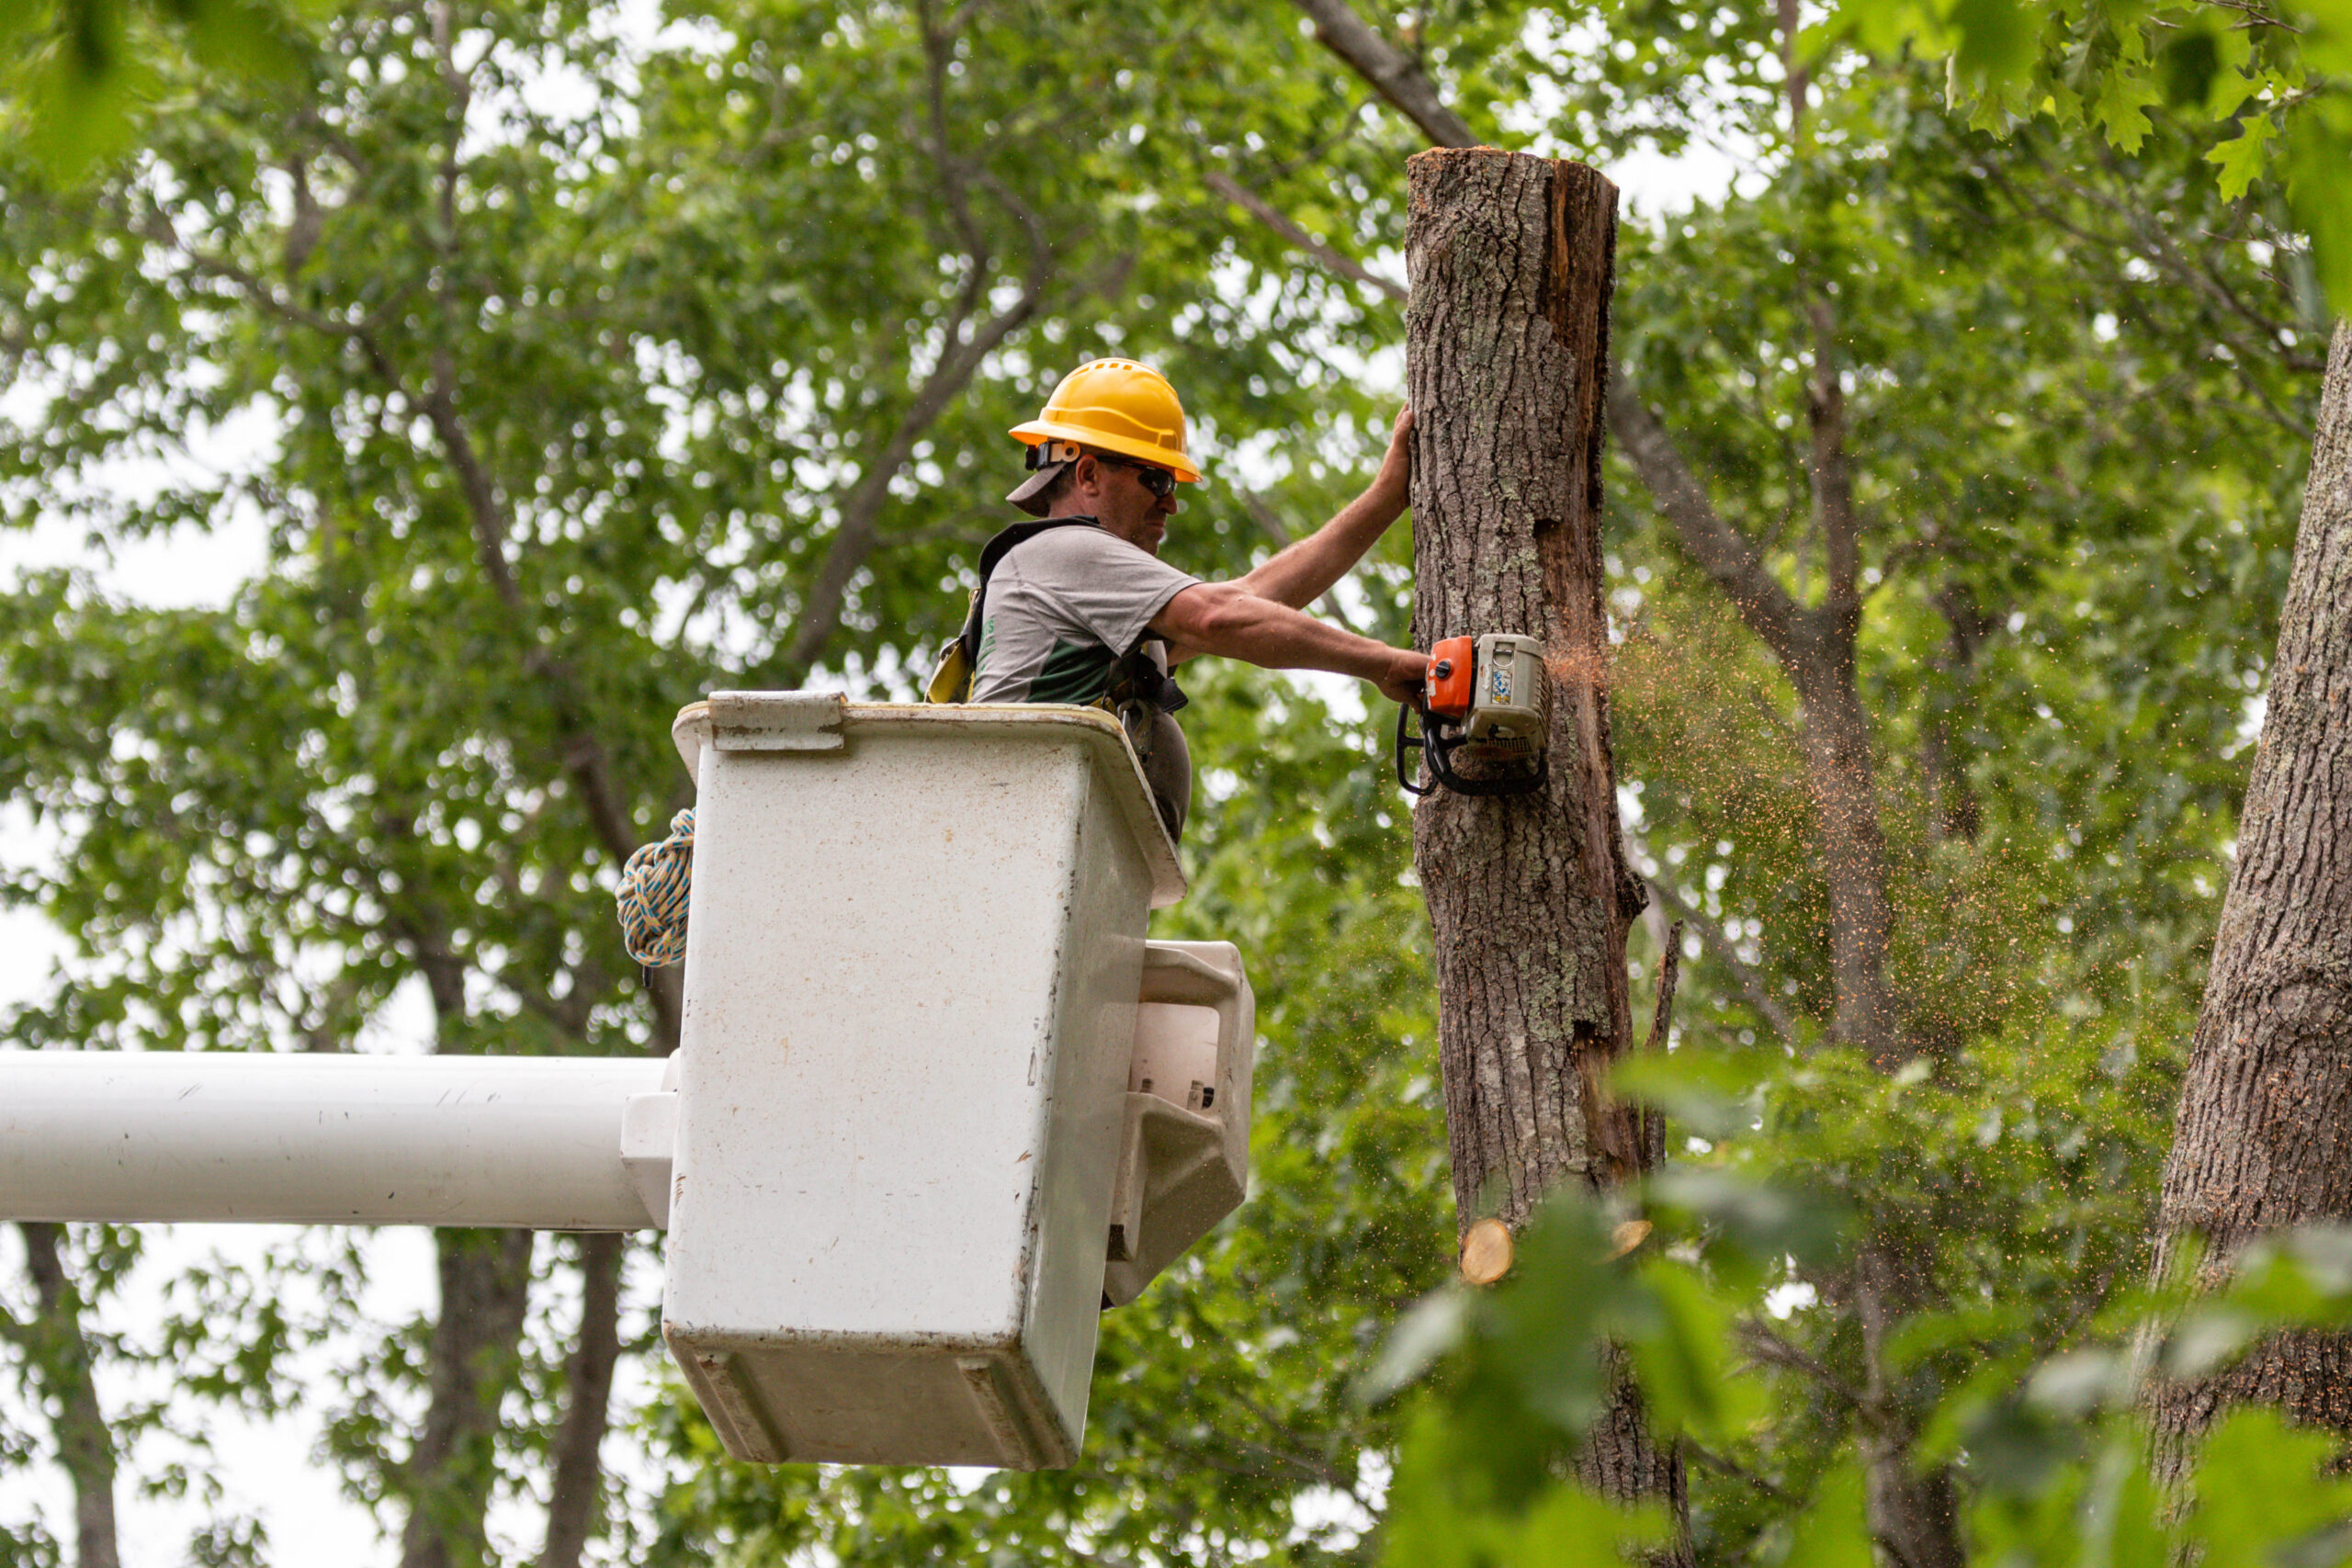 Cutting The Tree Into Pieces From A Bucket Truck